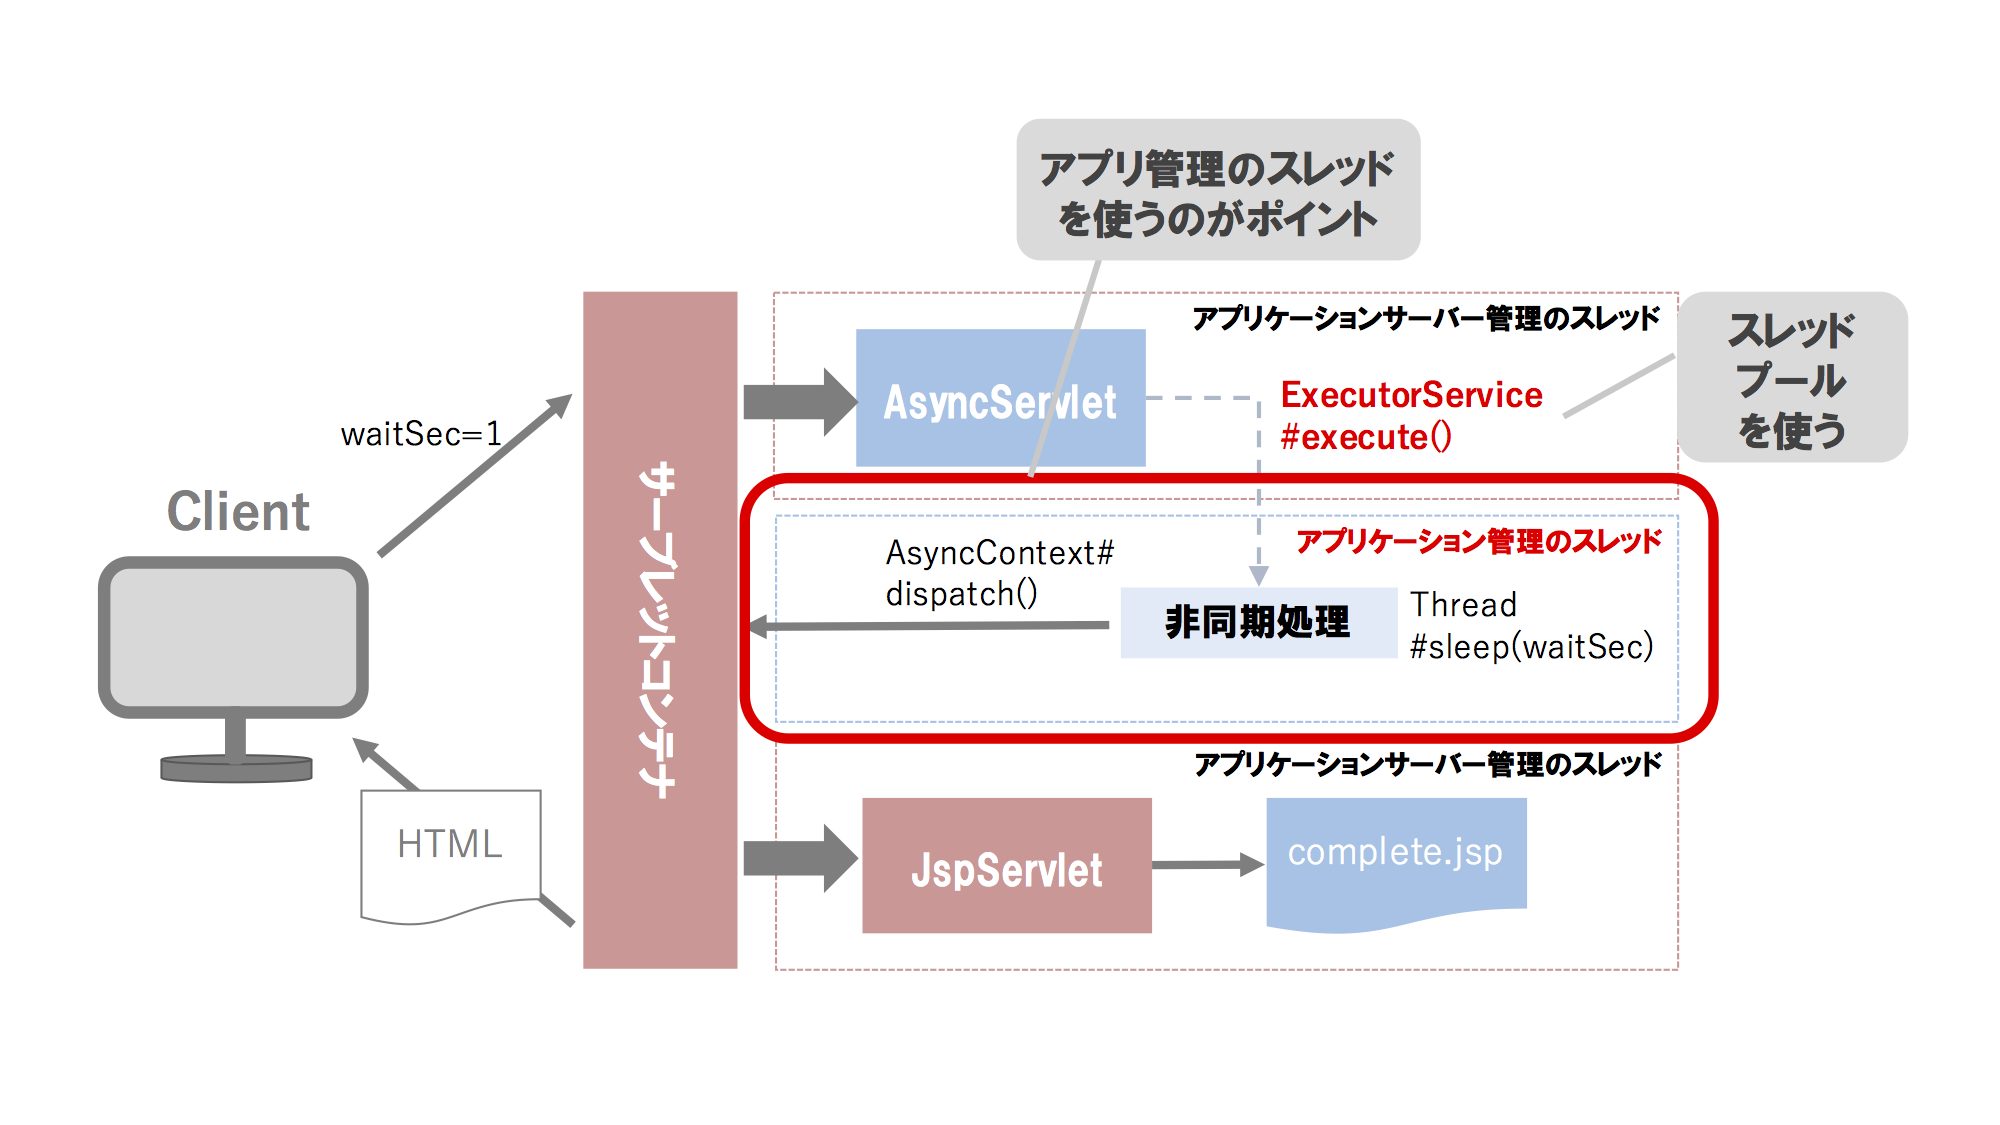 servlet-async-example-using-app-managed-thread.png